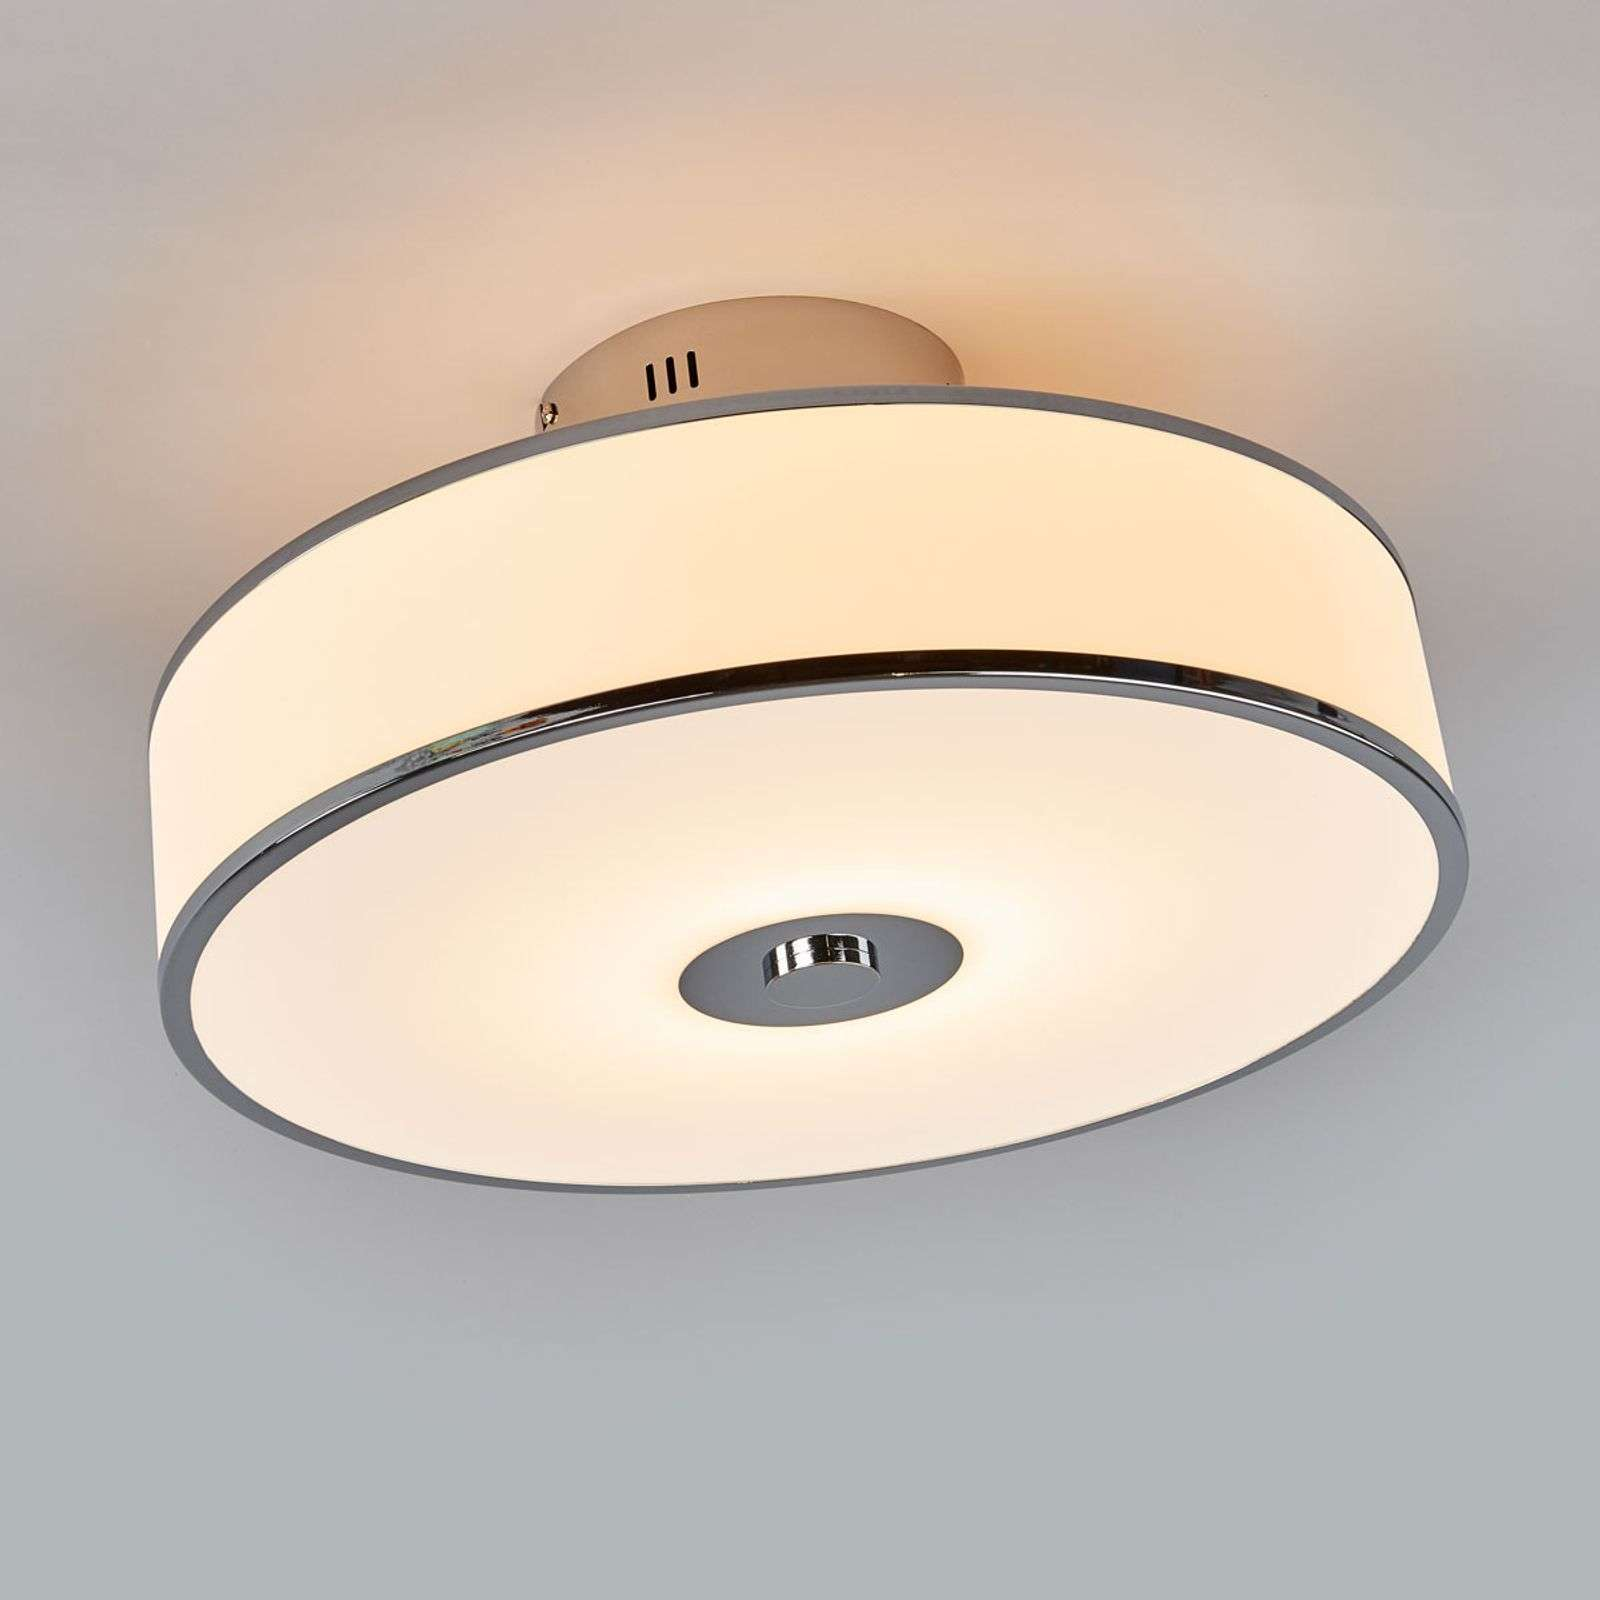 Plafonnier LED Lounge dimmable en blanc/chromé